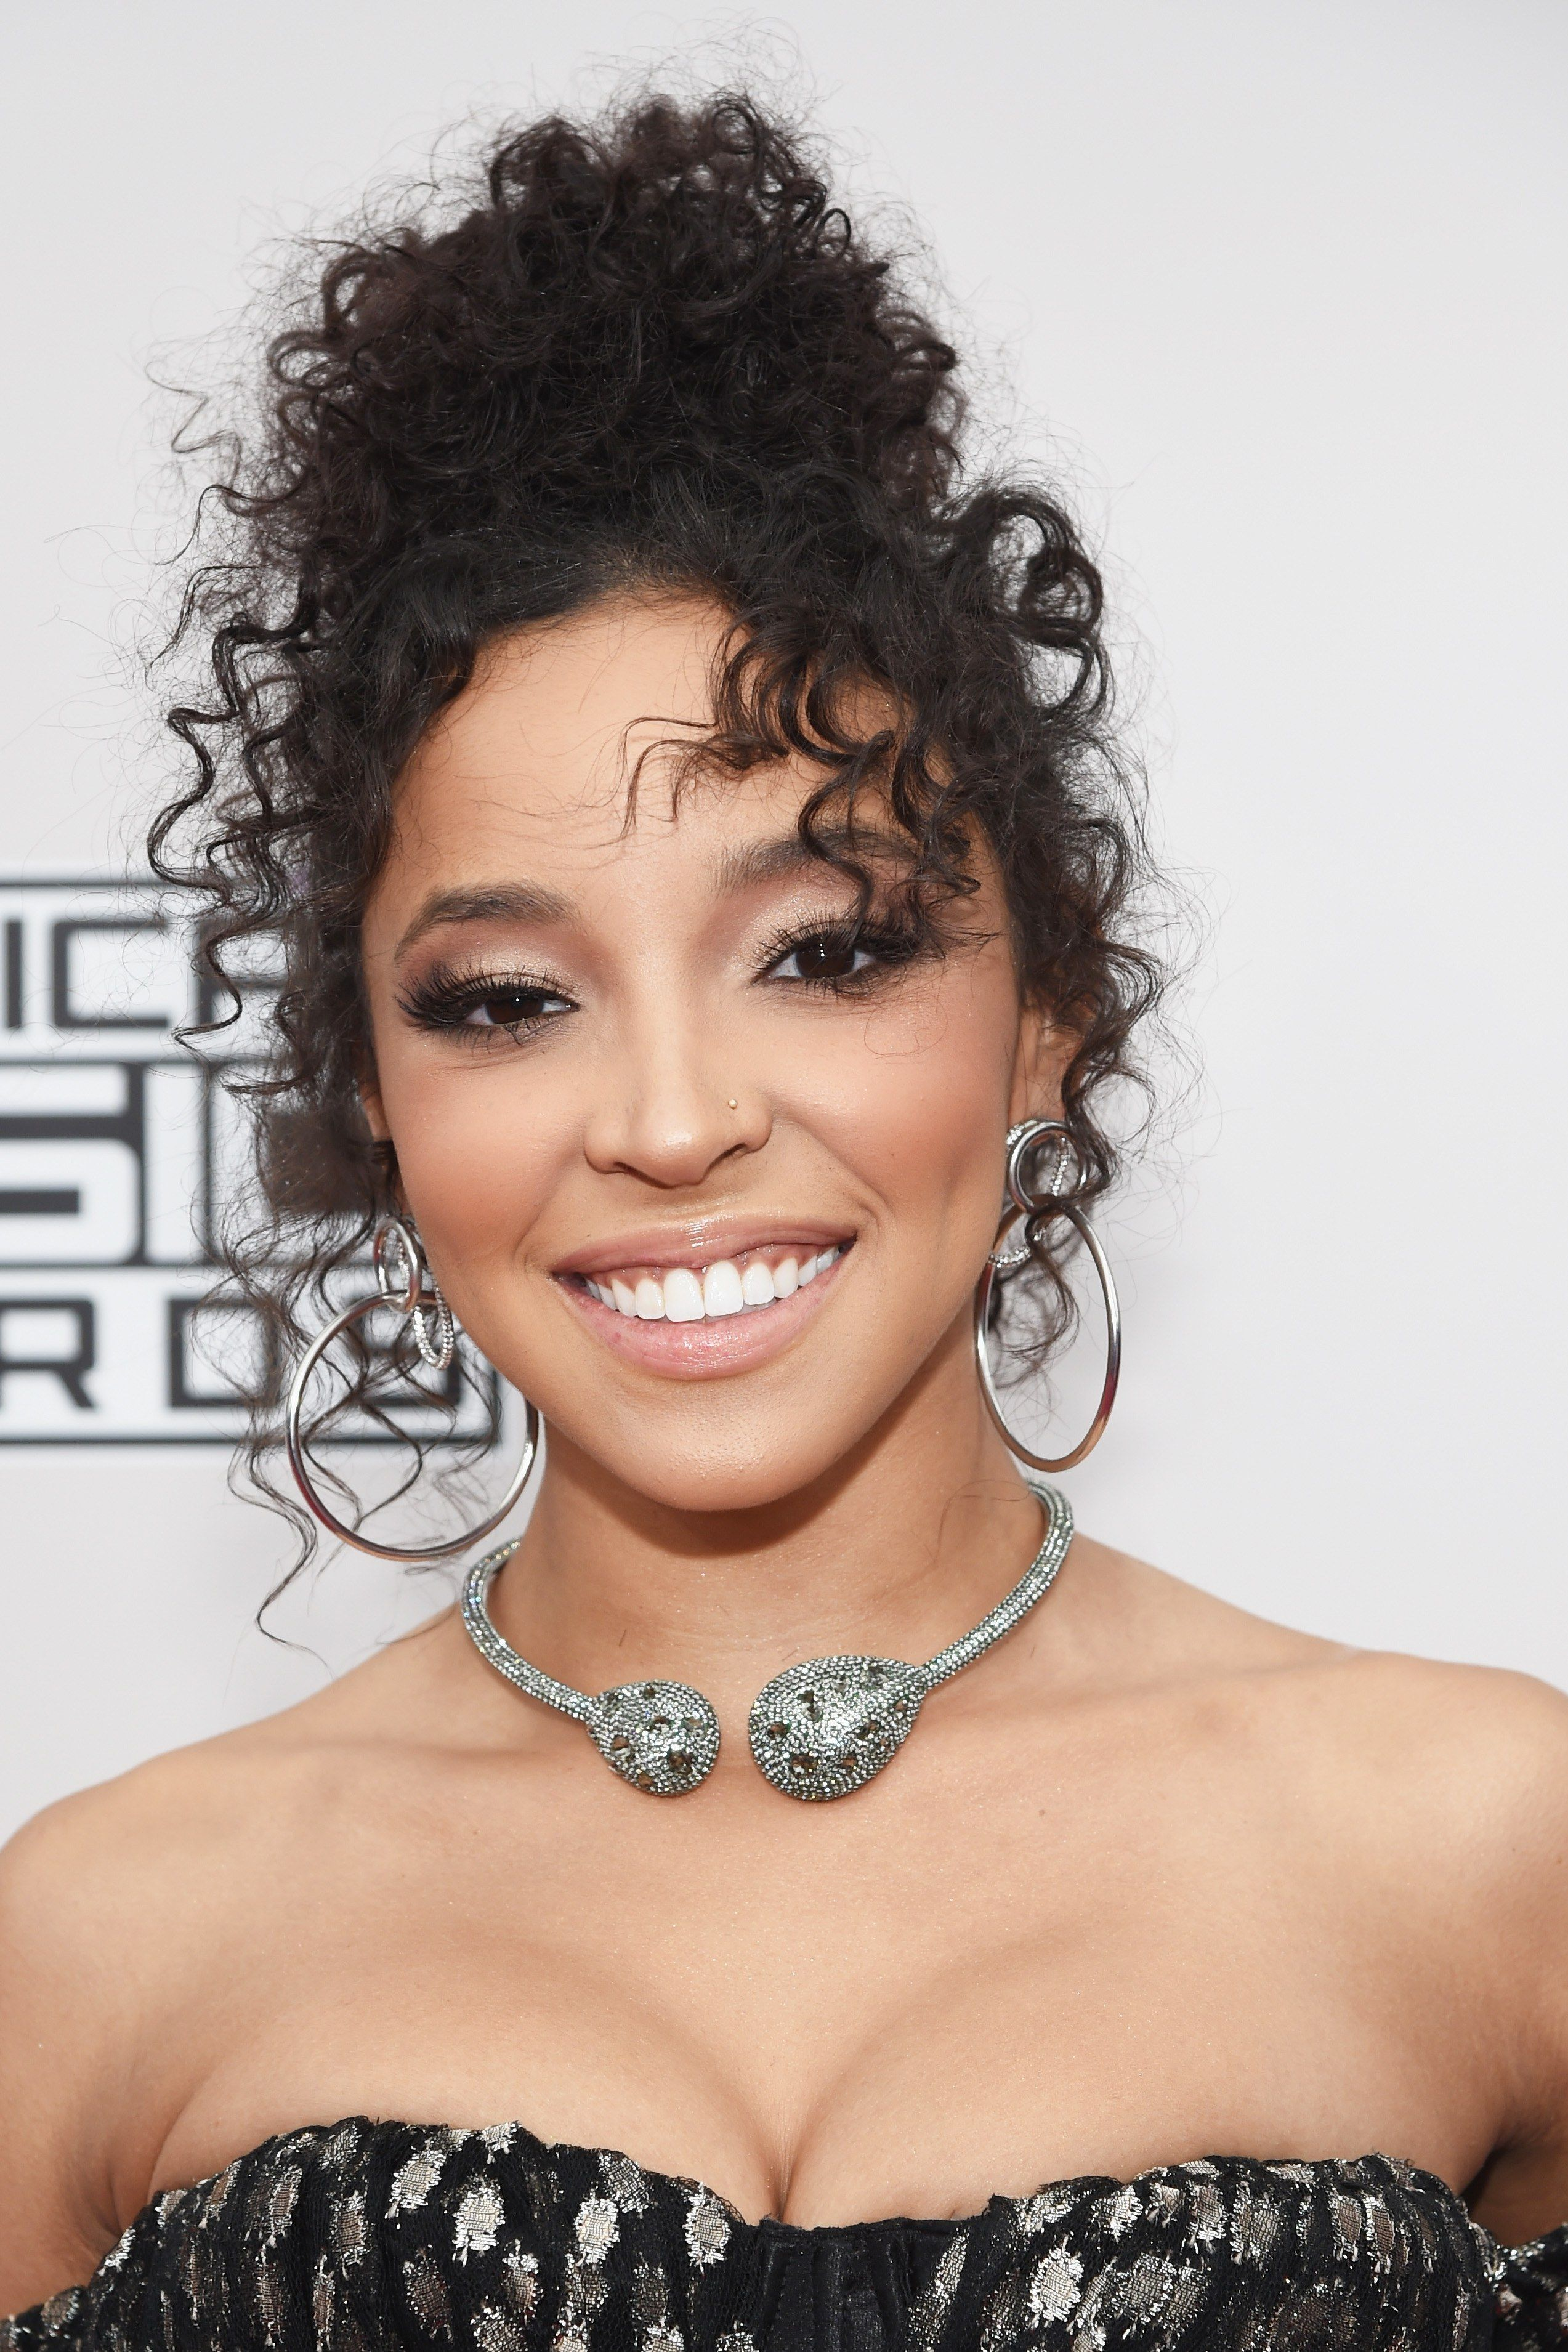 The 13 Most SHOW-STOPPING Beauty Looks from the AMAs Red ...